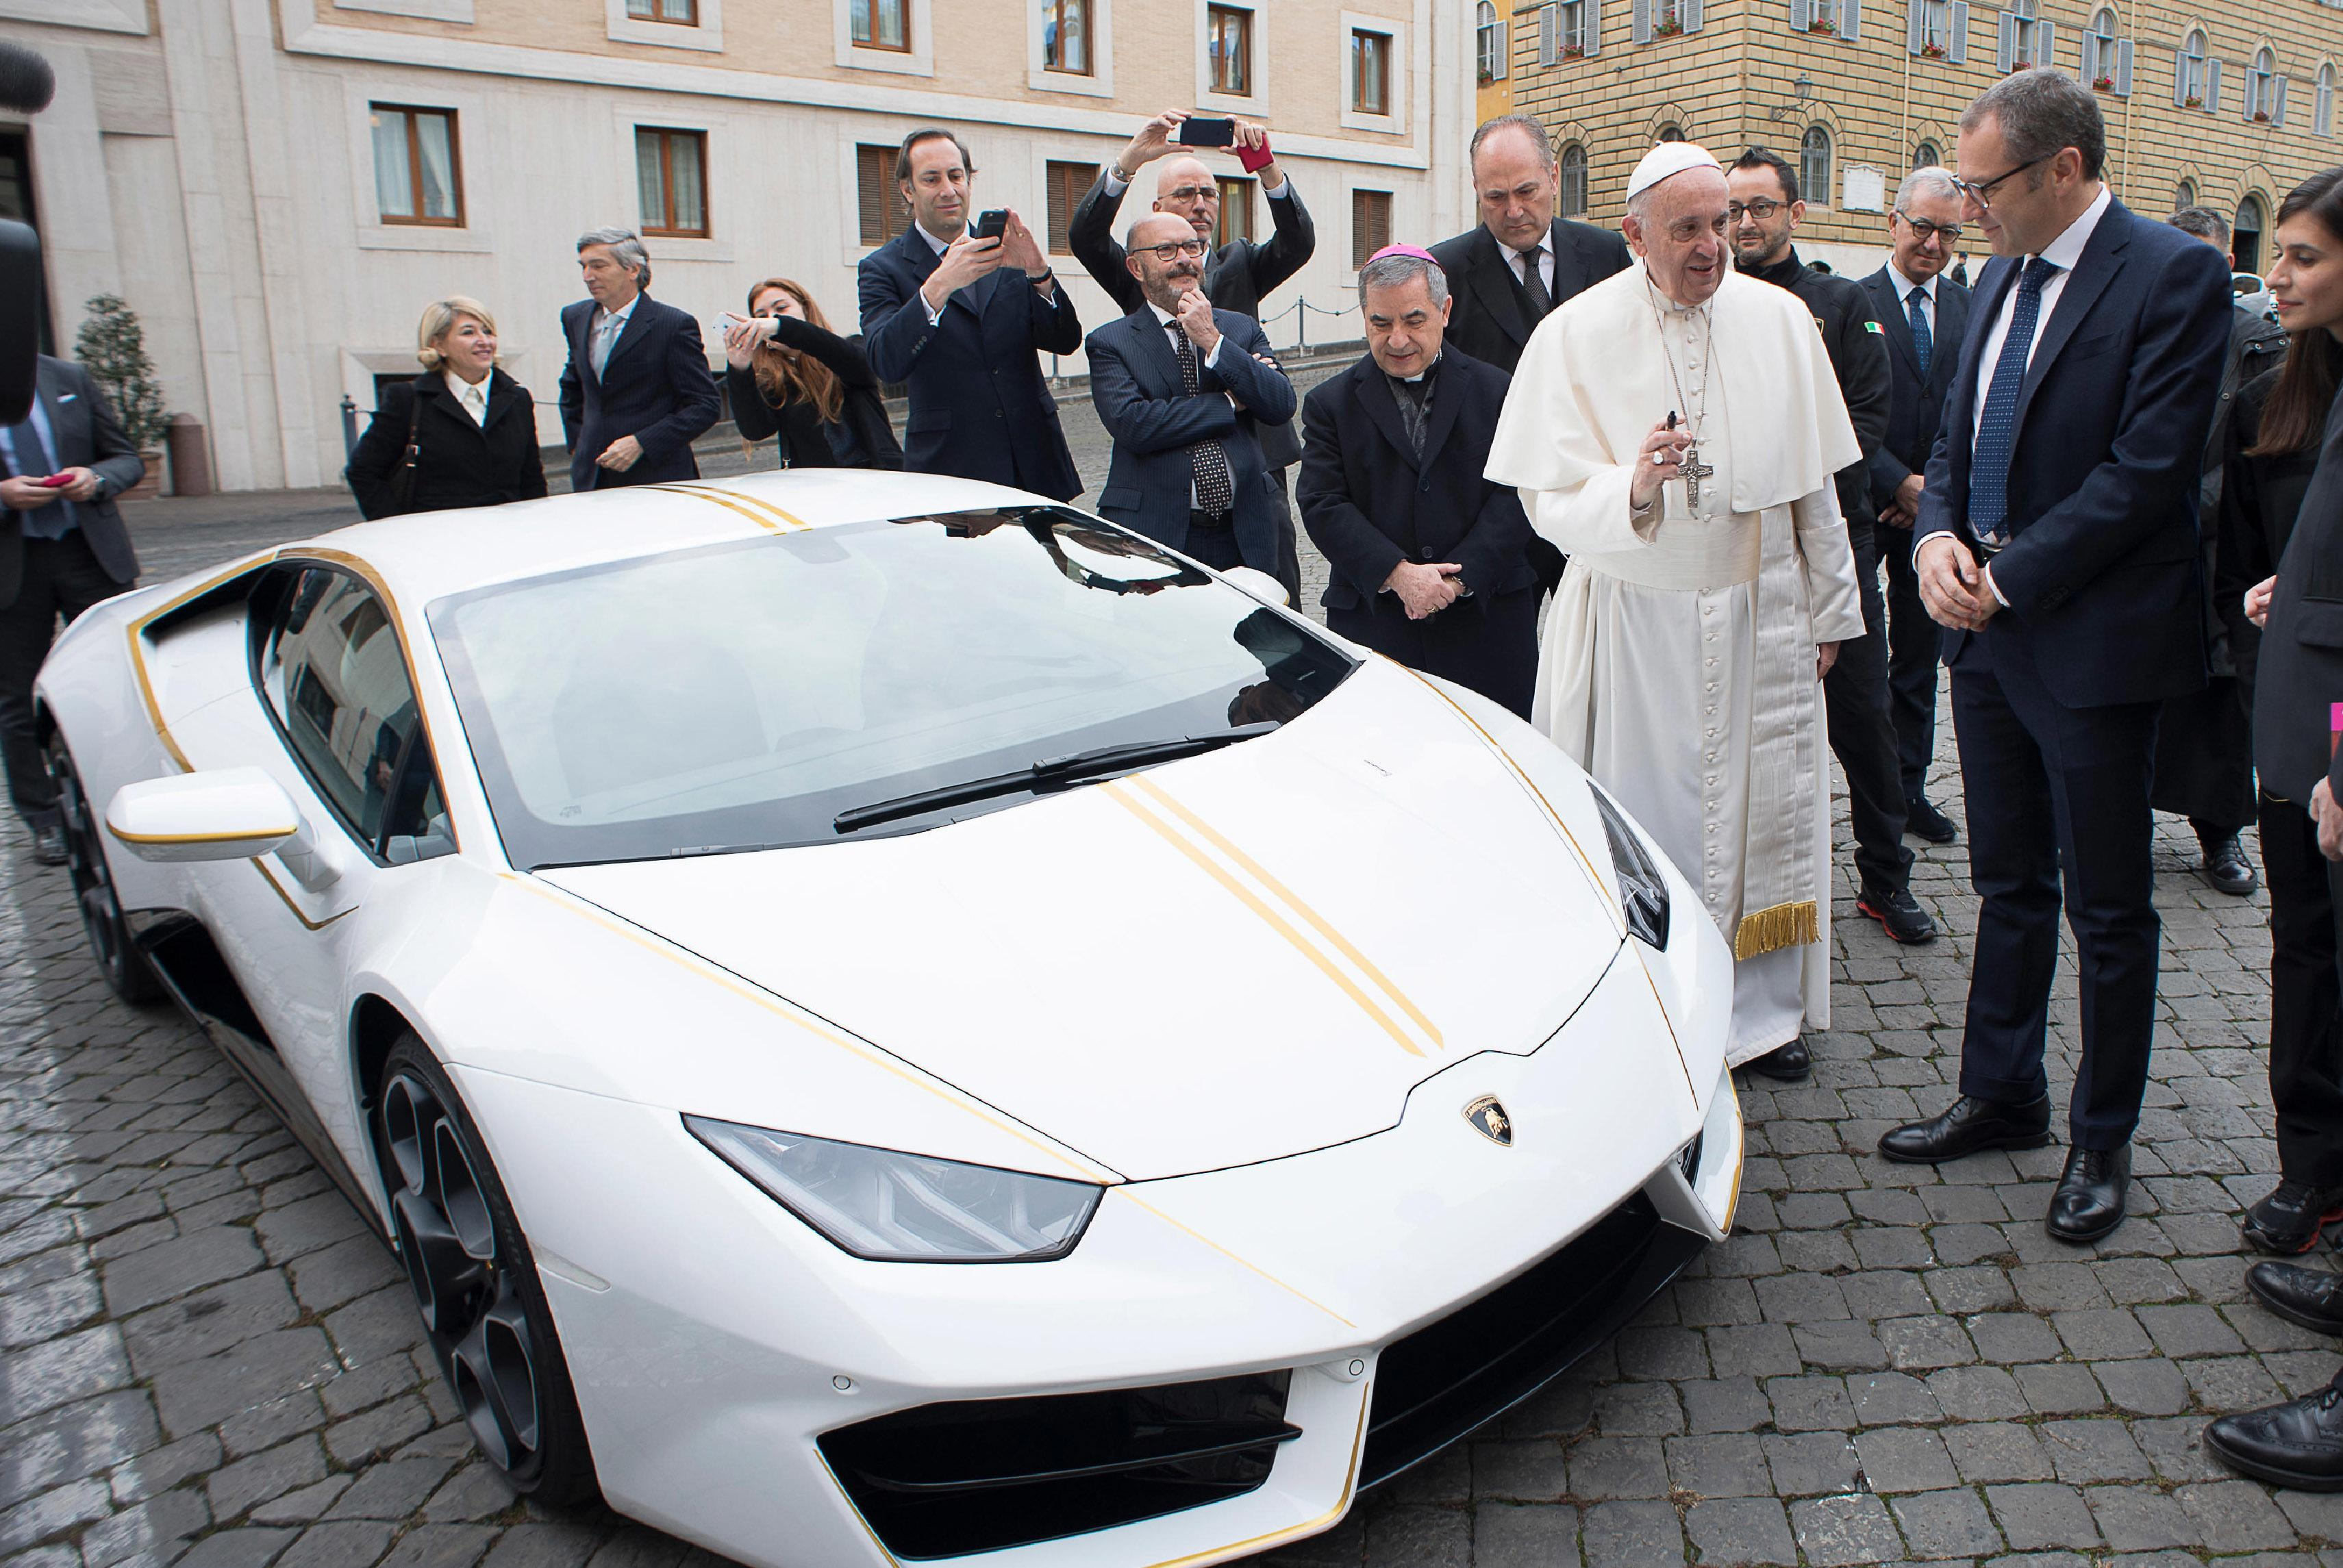 Pope Francis speaks with CEO of Lamborghini Stefano Domenicali next to a white Lamborghini donated to the pontiff by the luxury sports car maker, at the Vatican, Wednesday, Nov. 15, 2017. The car will be auctioned off by Sotheby's, with the proceeds going to charities including one aimed at helping rebuild Christian communities in Iraq that were devastated by the Islamic State group. (L'Osservatore Romano/Pool Photo via AP)